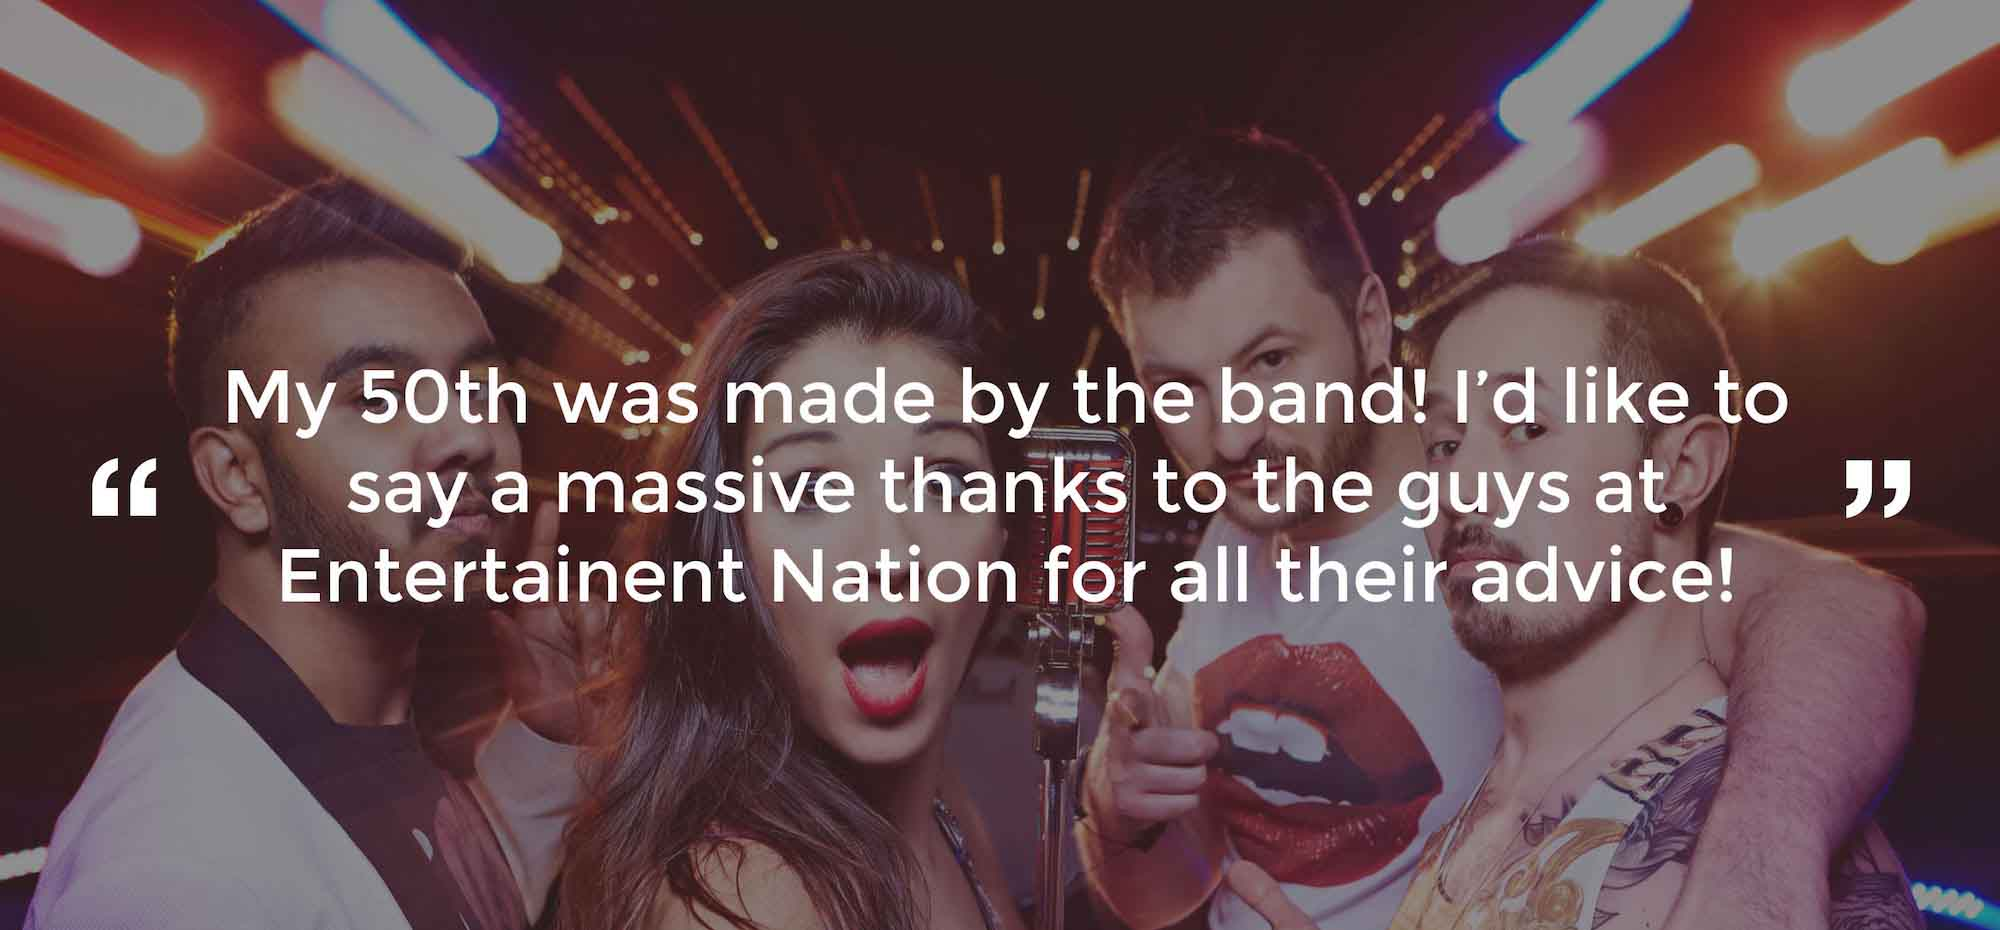 Client Review of a Party Band Europe